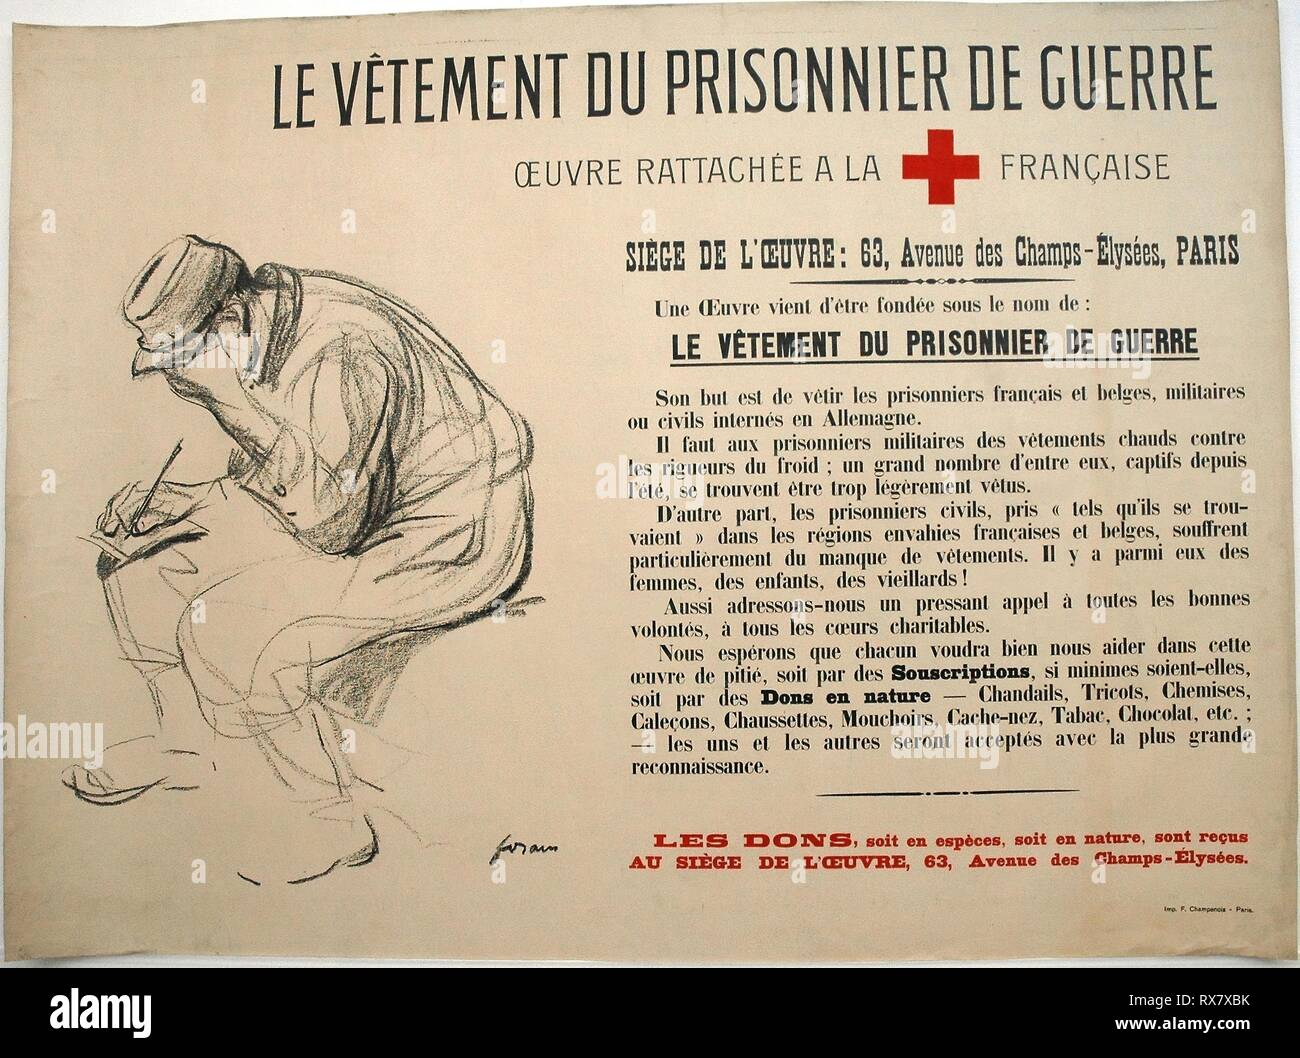 The Clothing of the Prisoner of war. Jean Louis Forain (French, 1852-1931); Printed by F. Champenois. Date: 1910-1920. Dimensions: 779 × 1049 mm. Color lithograph on cream wove paper laid down on linen. Origin: France. Museum: The Chicago Art Institute. - Stock Image